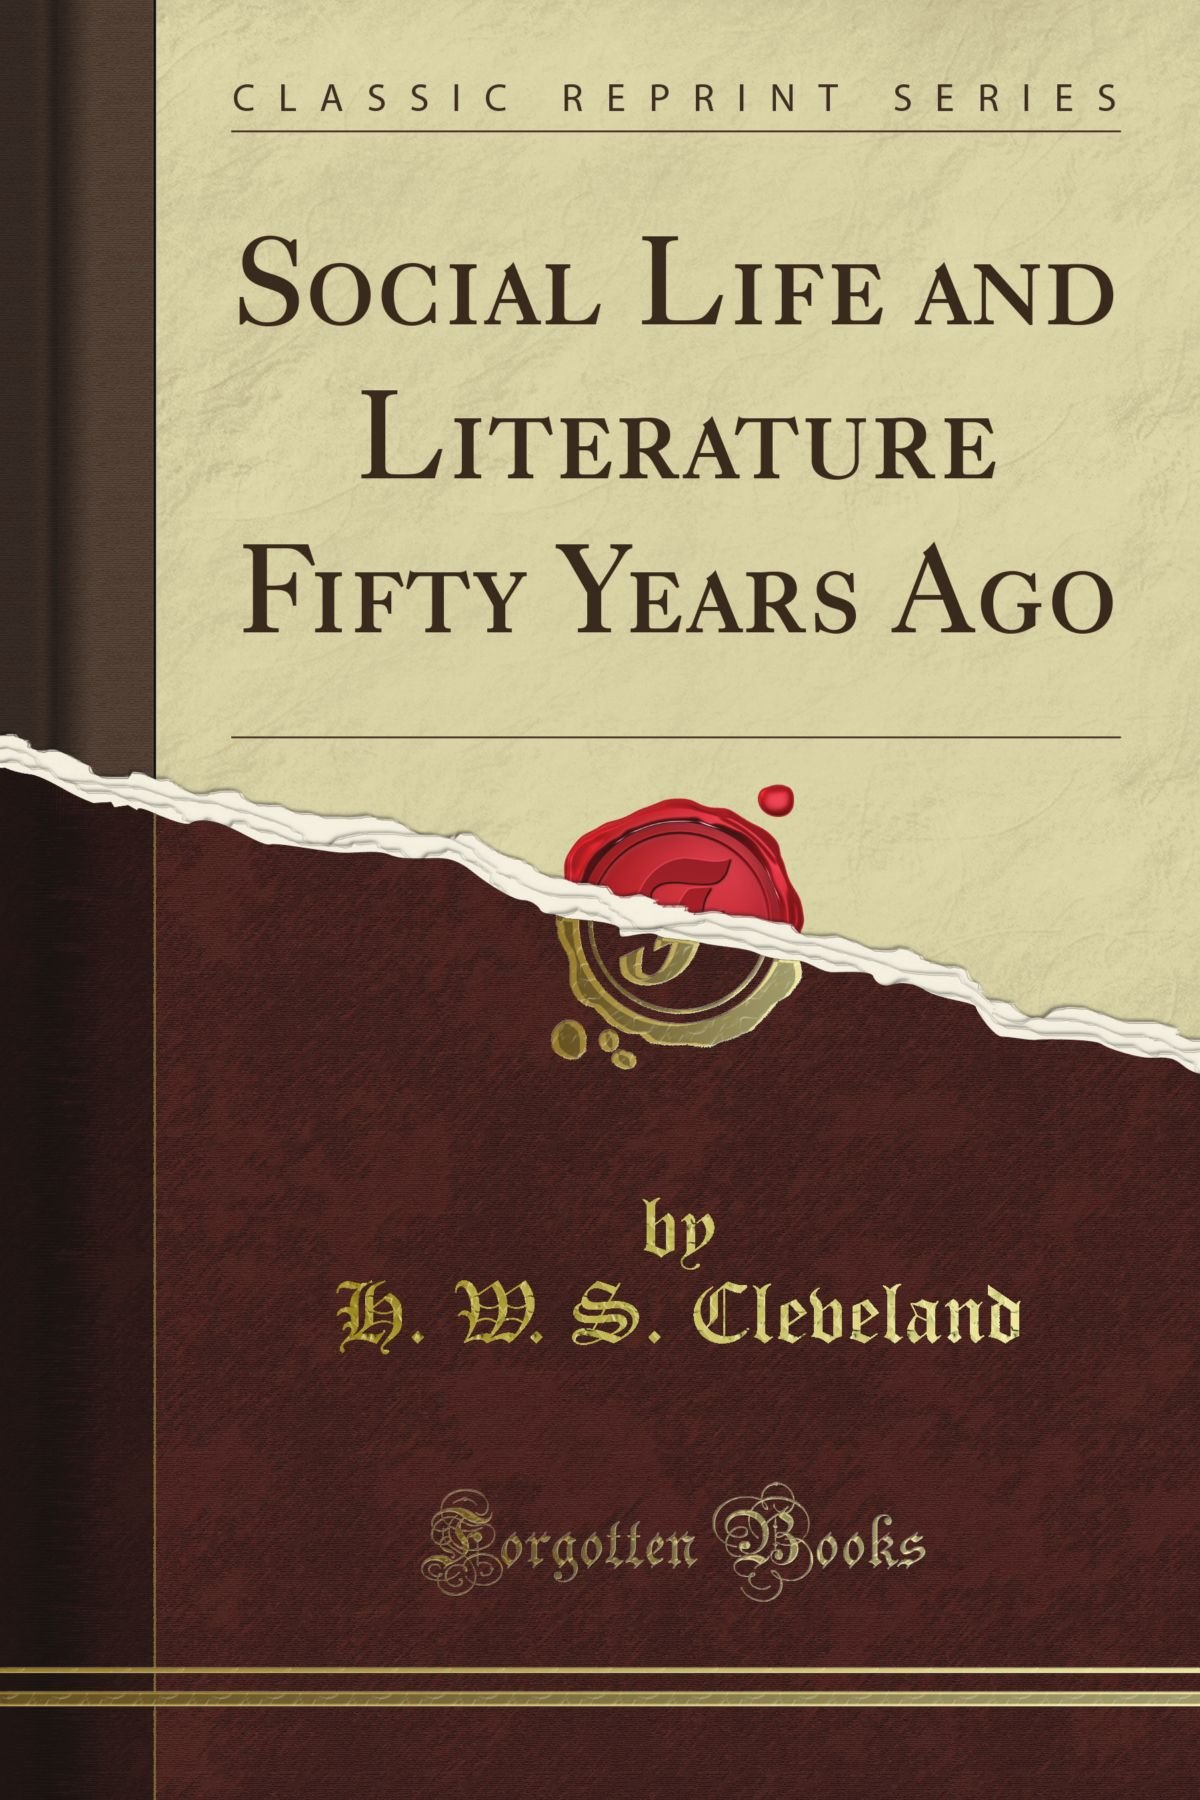 Download Social Life and Literature Fifty Years Ago (Classic Reprint) Text fb2 ebook